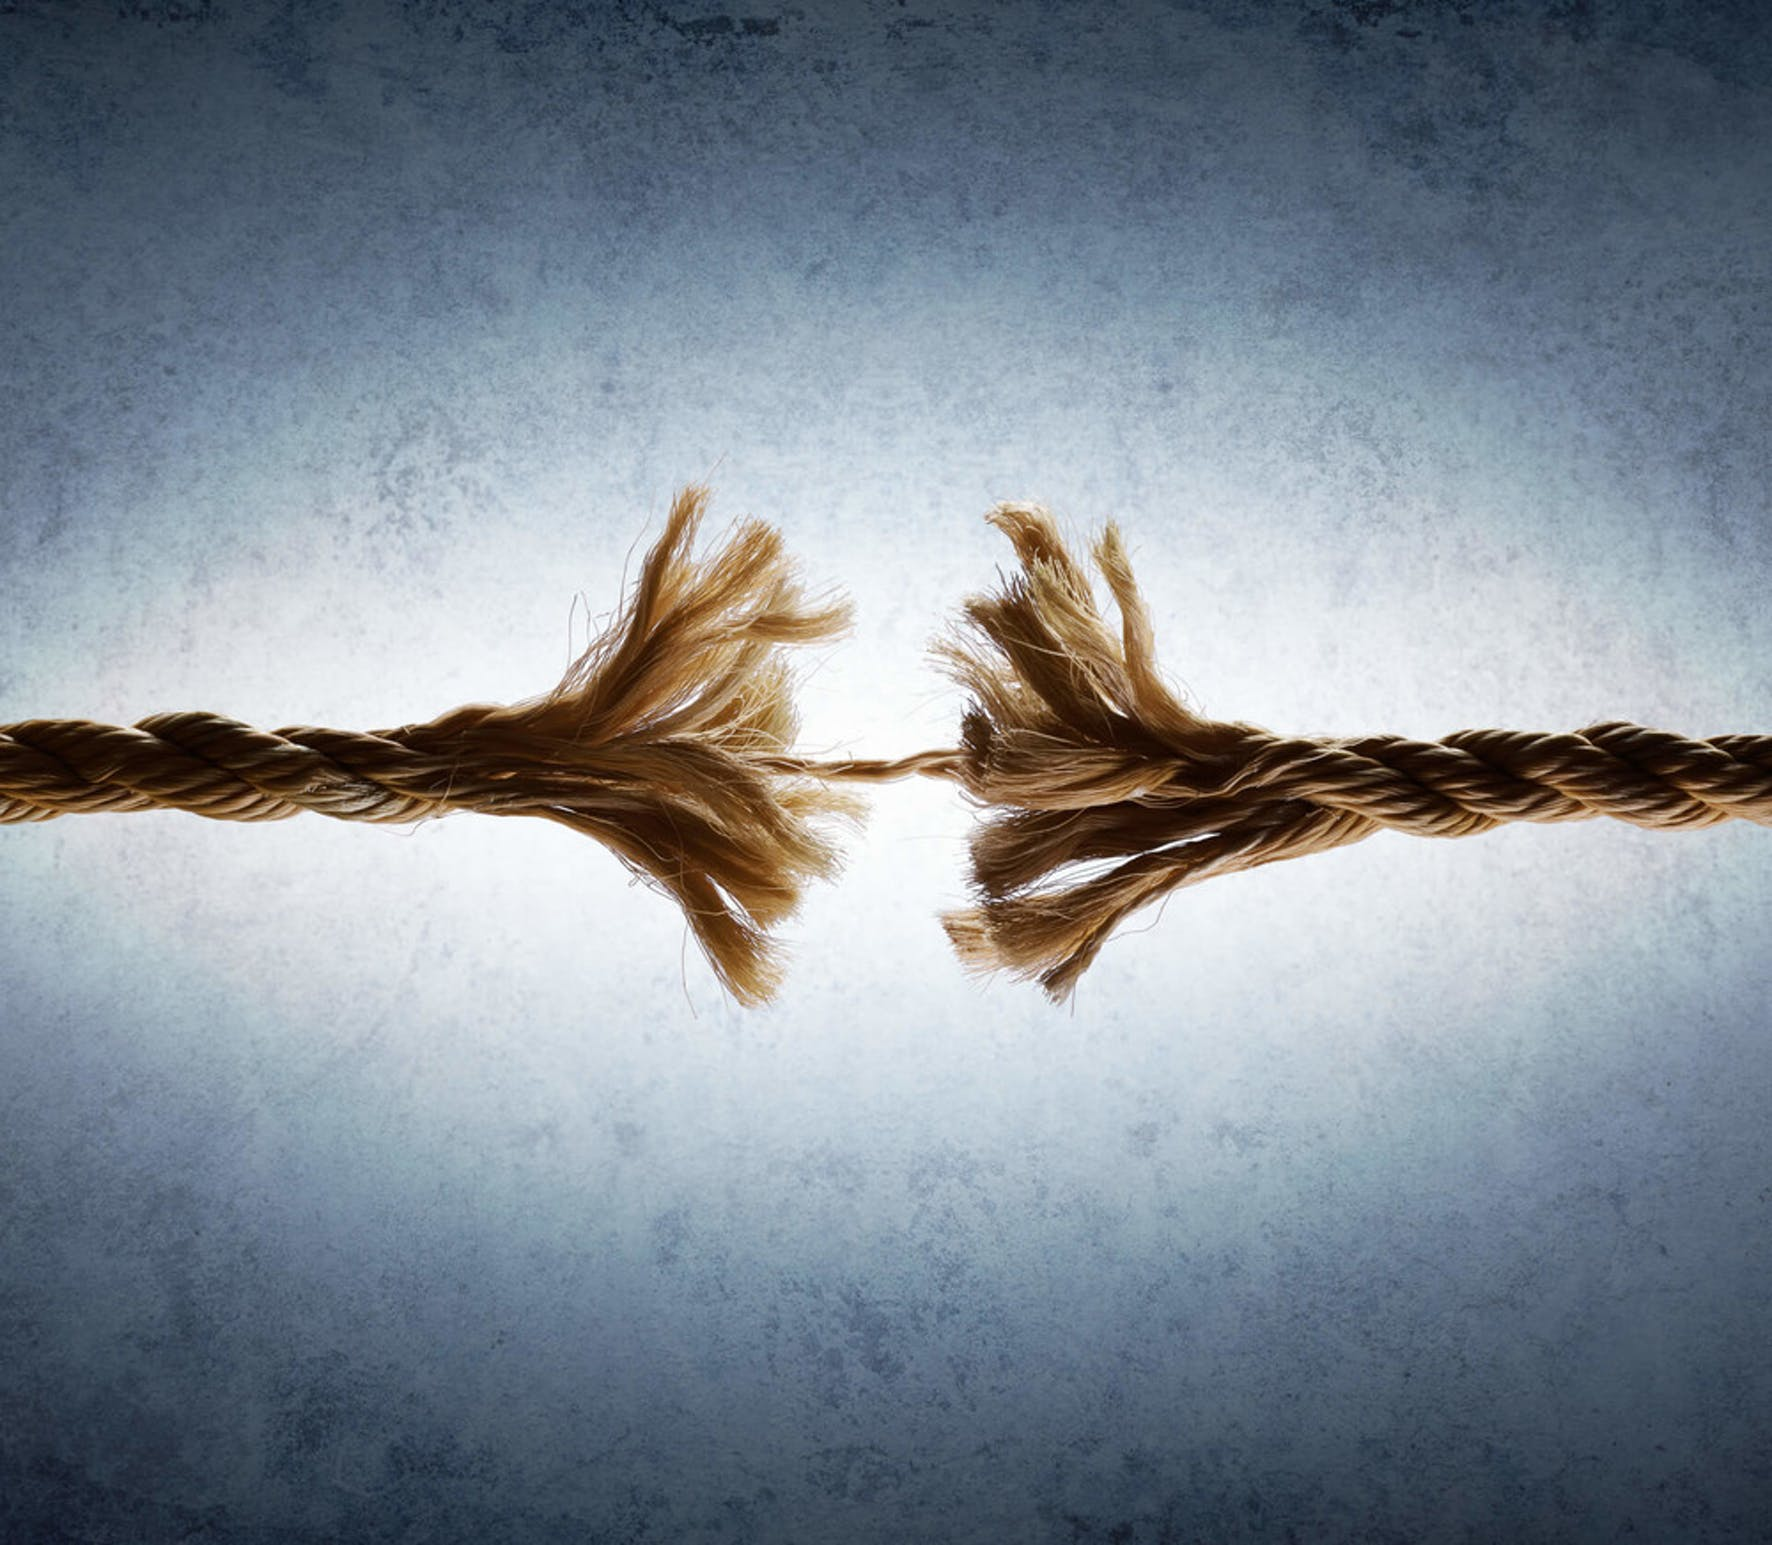 Rope The turning point to quit the company